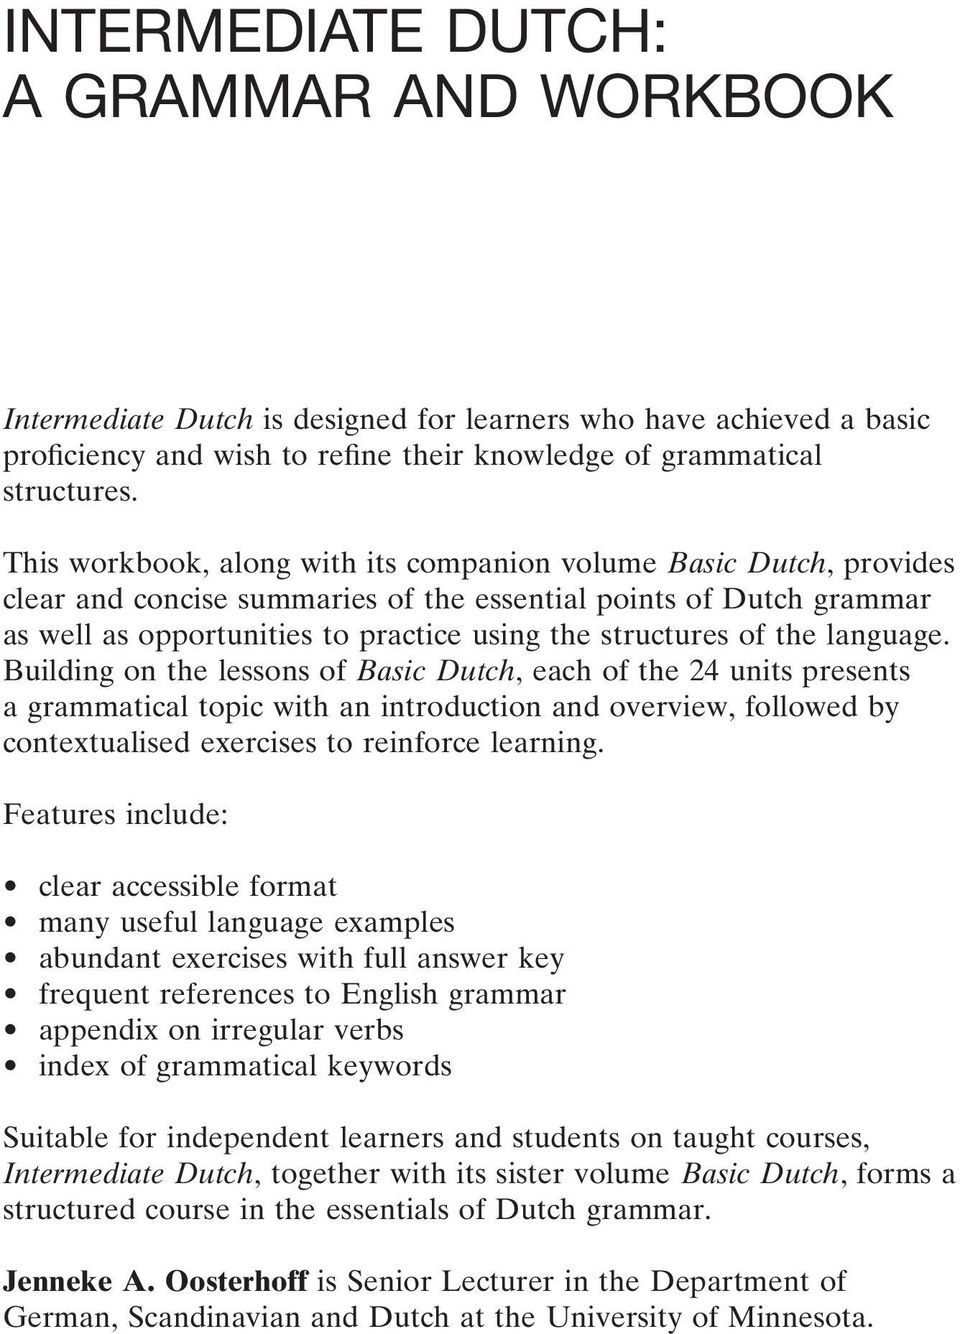 the language. Building on the lessons of Basic Dutch, each of the 24 units presents a grammatical topic with an introduction and overview, followed by contextualised exercises to reinforce learning.